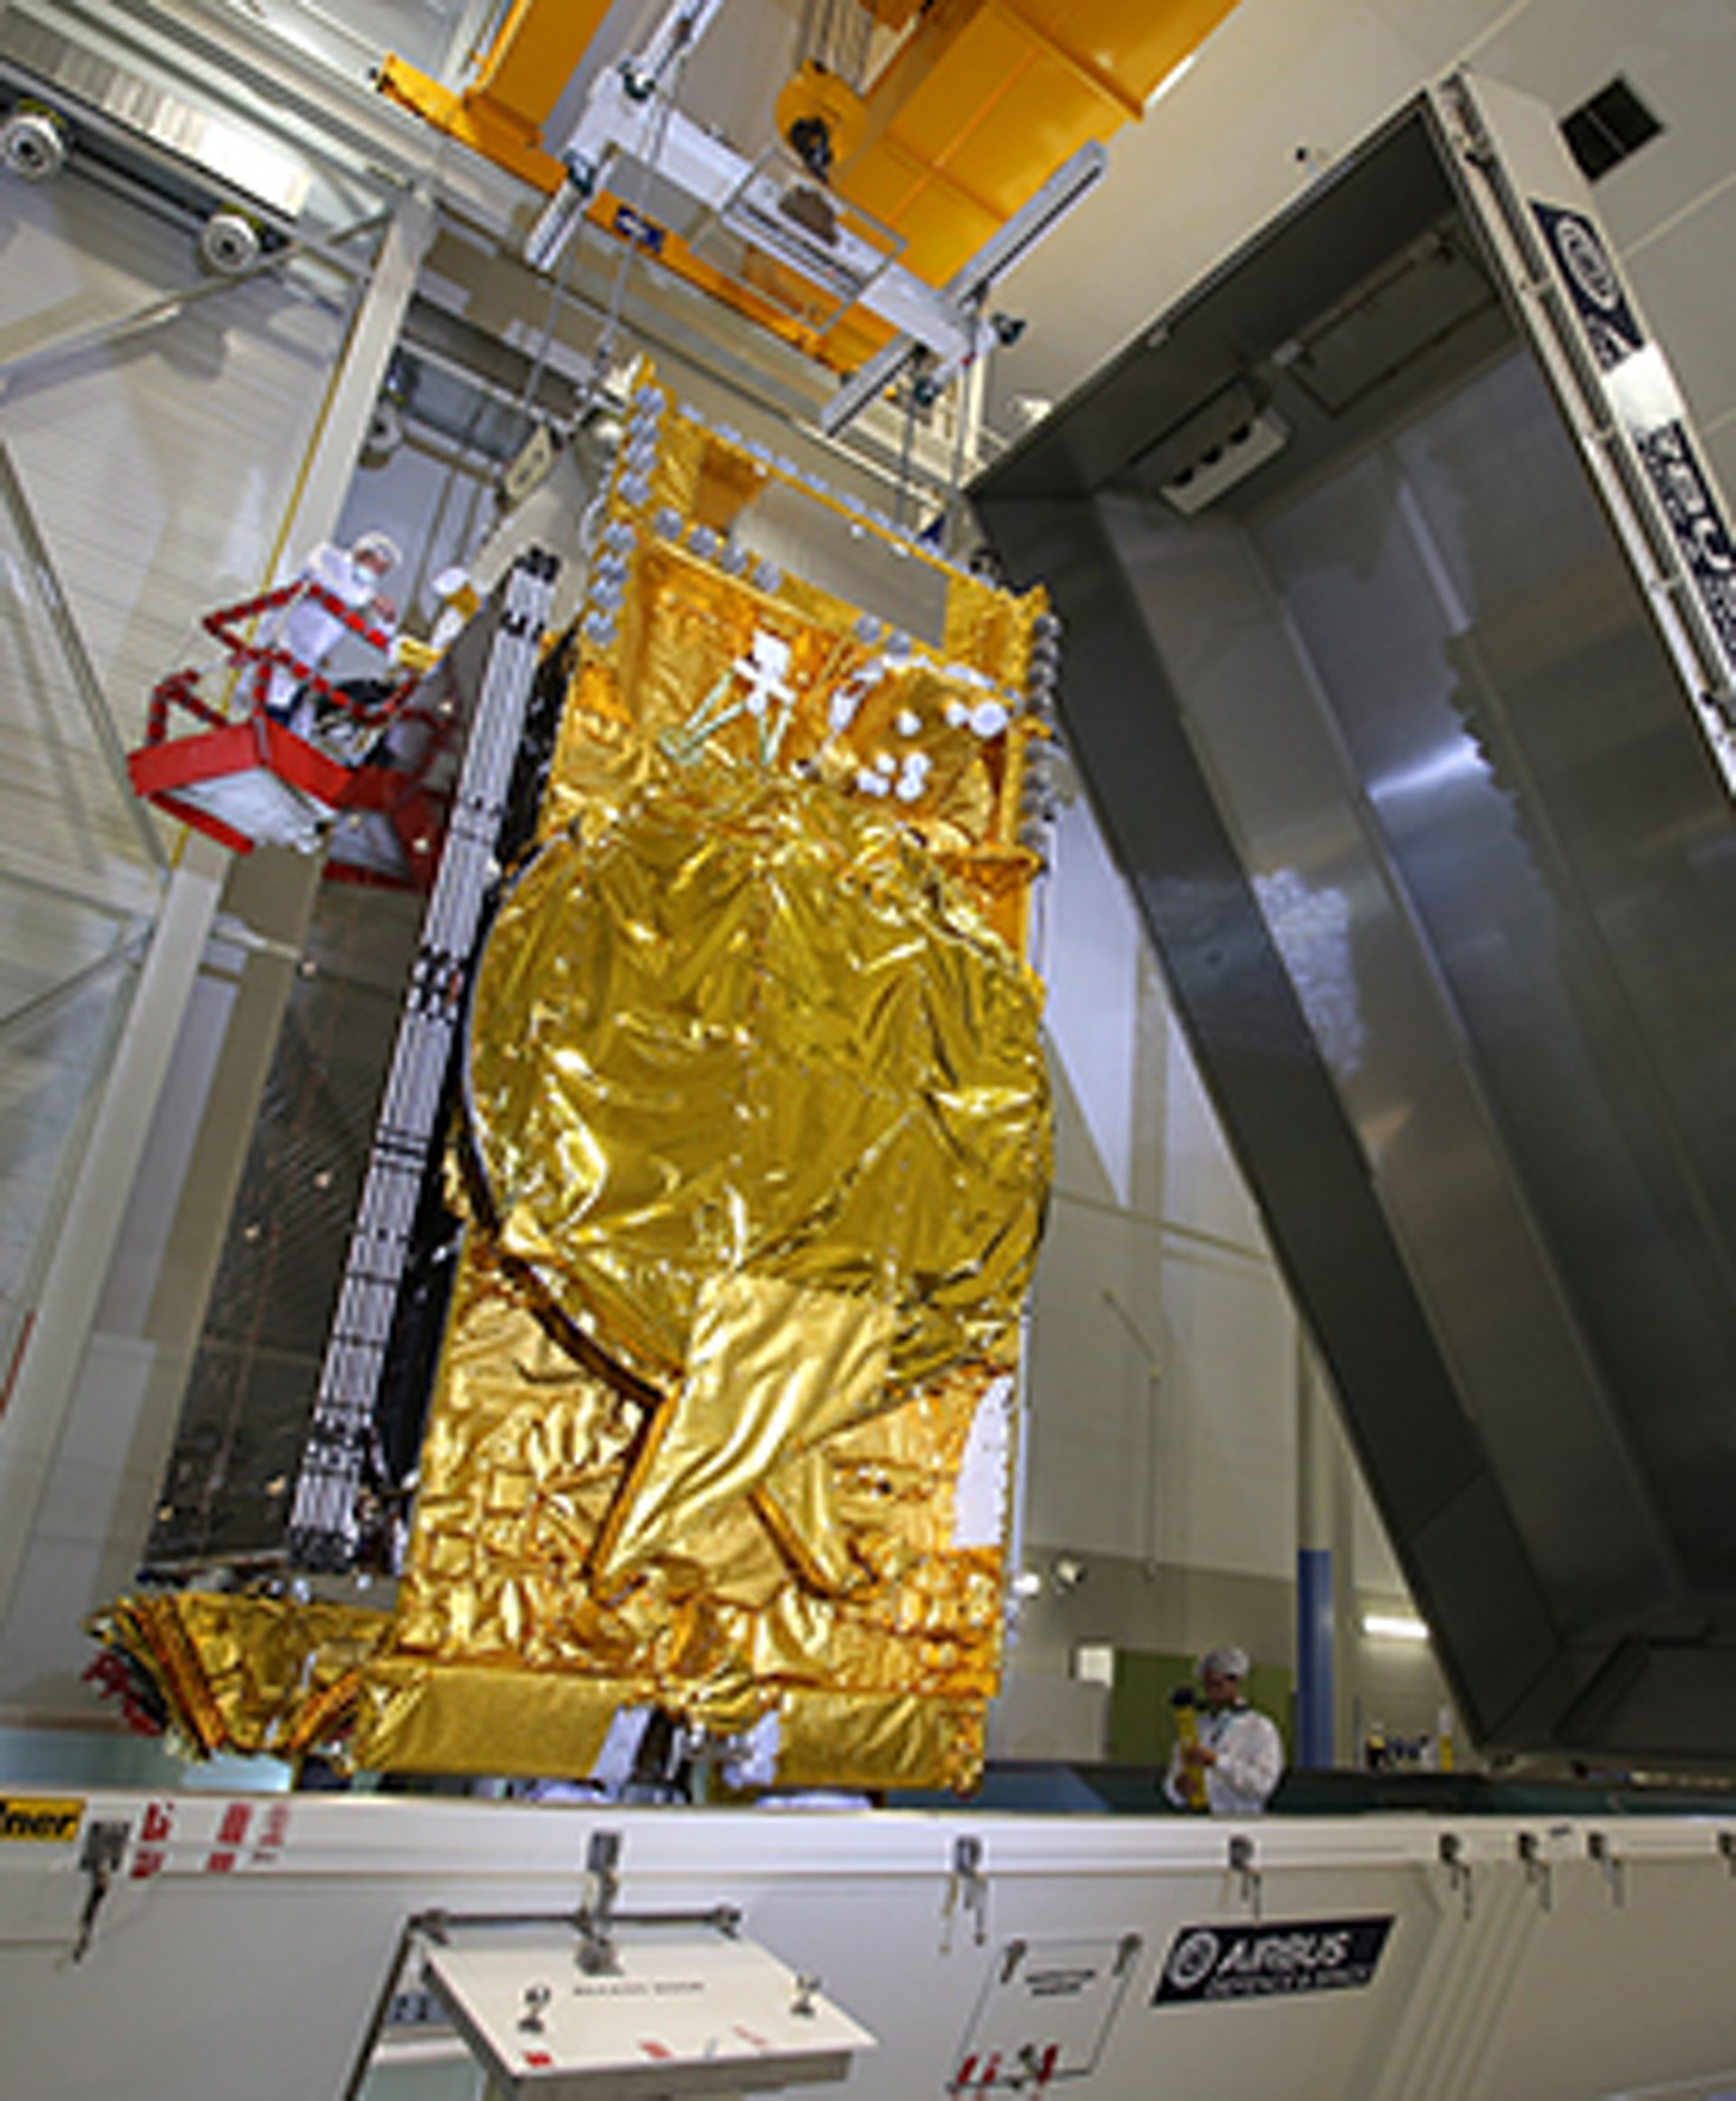 DirecTV 15, the most powerful US broadcast satellite, leaving Airbus 's cleanrooms in Toulouse (France) to Kourou